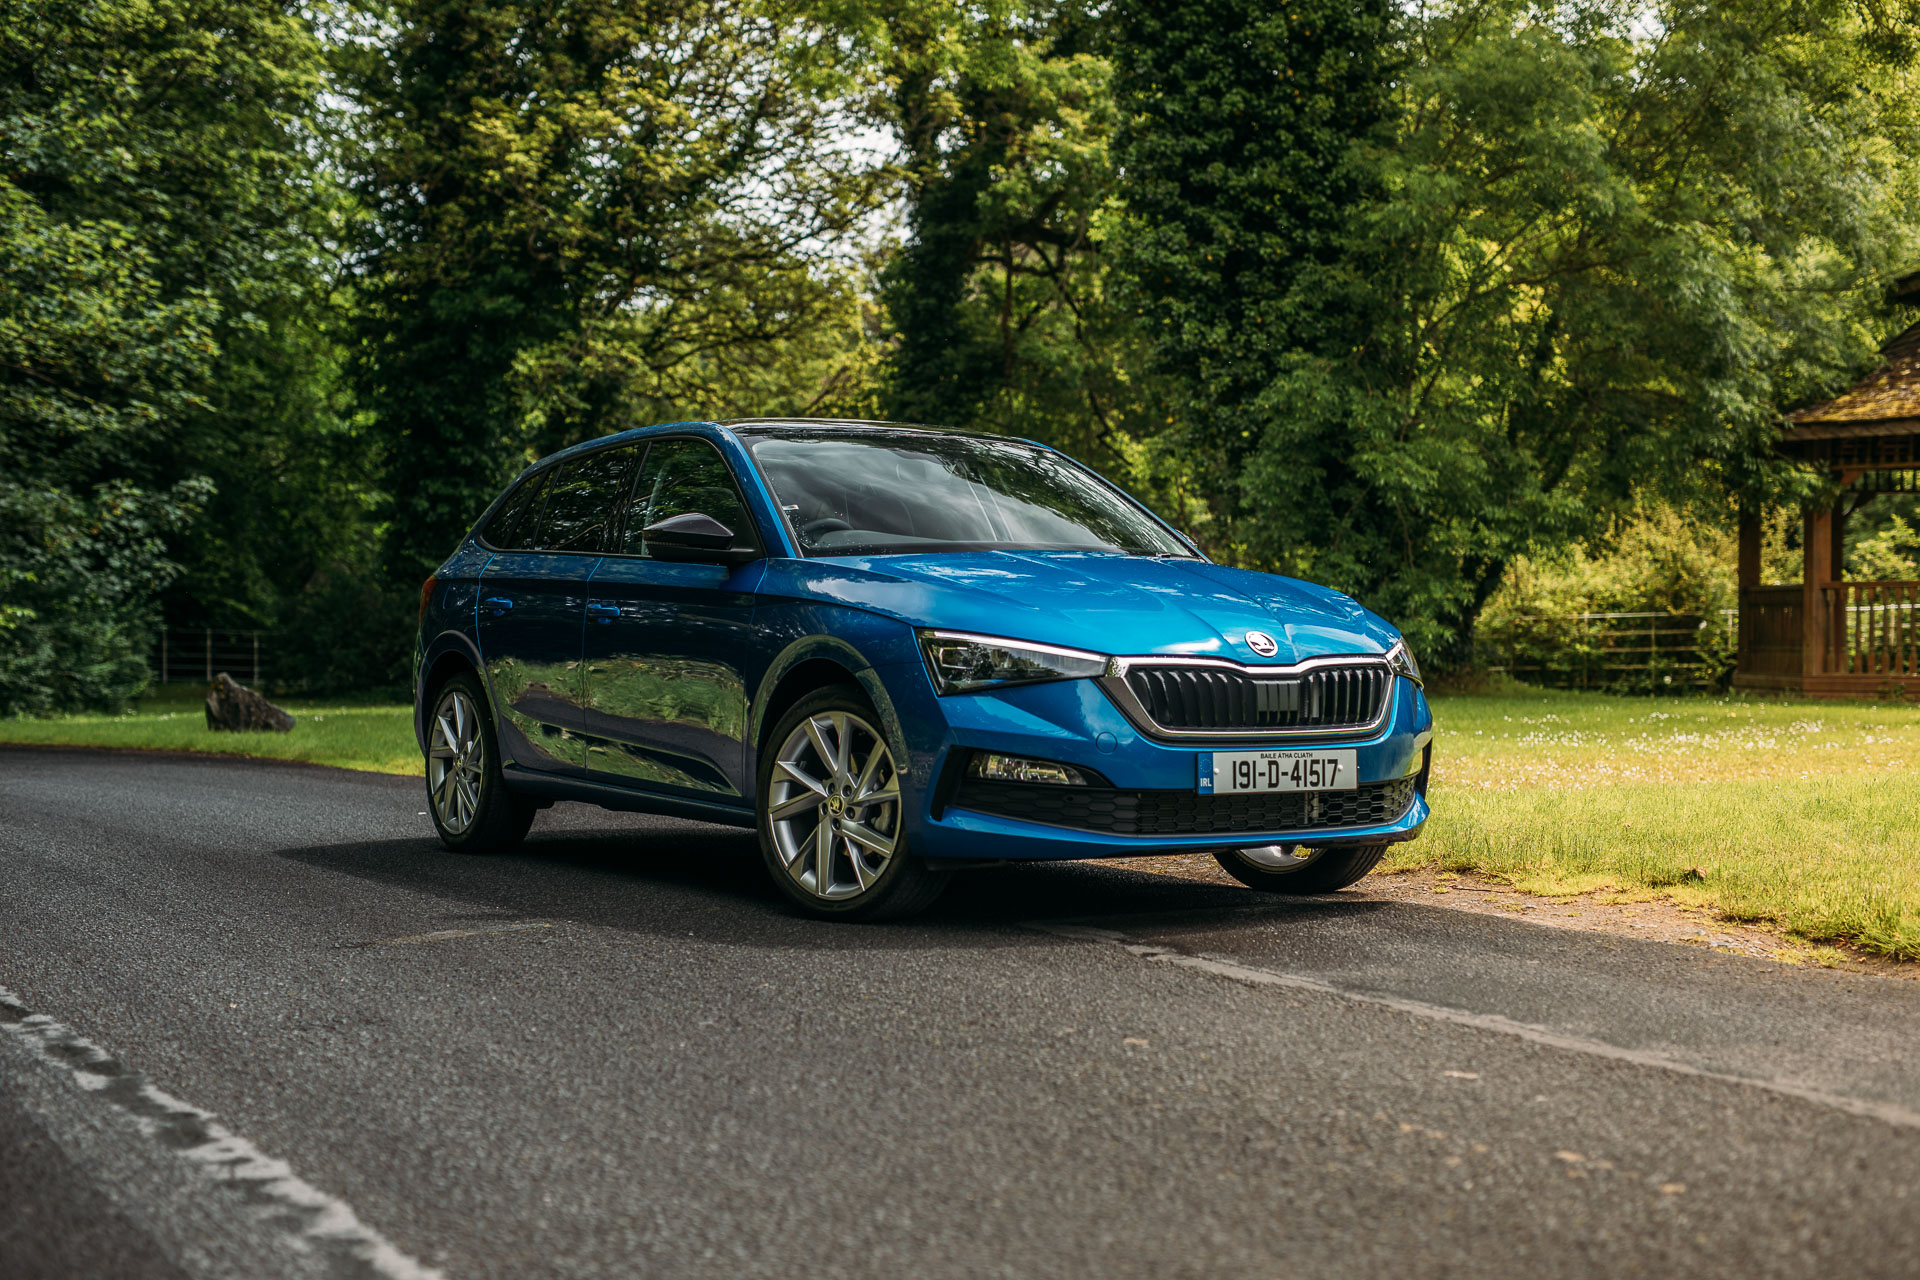 All-new Skoda Scala to be available in time for 192 period